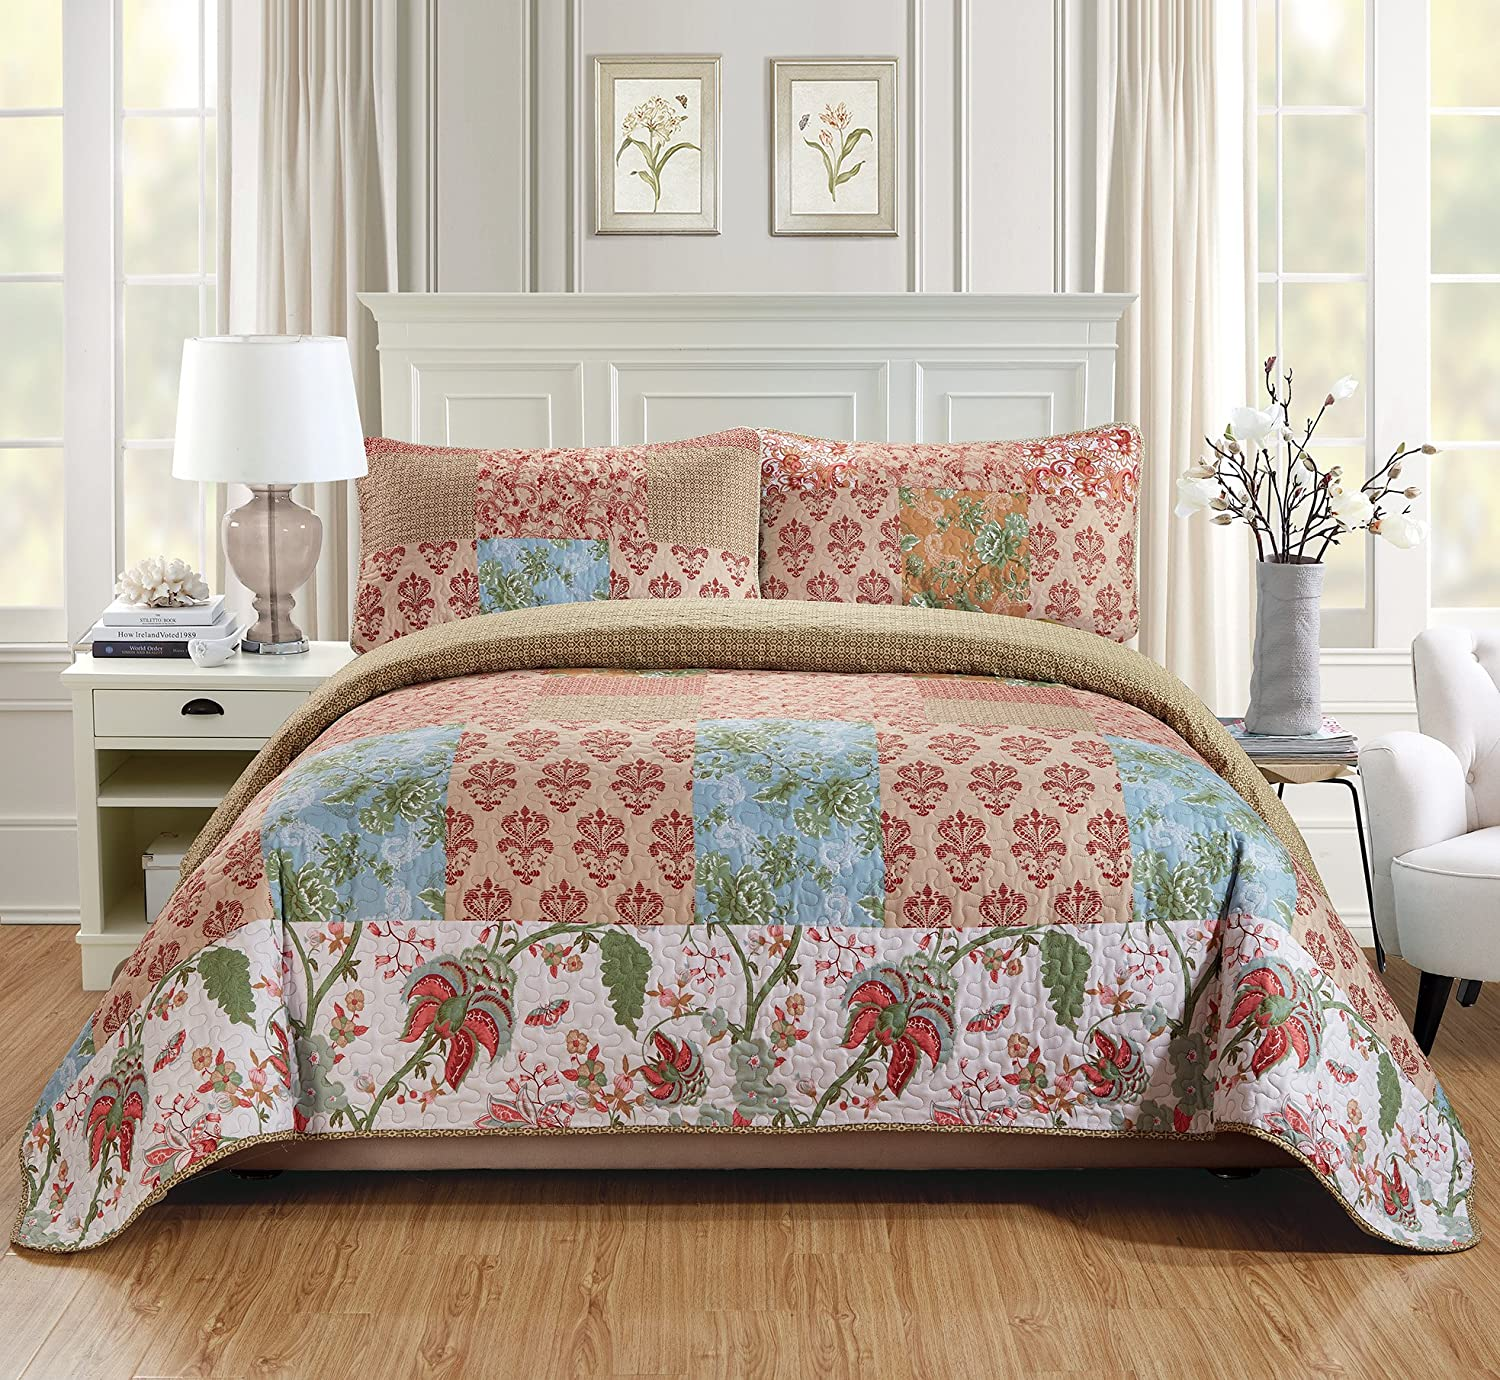 MK Home Over Size Quilted Coverlet Bedspread Set Patchwork Floral Squares Beige Red Light Blue Green White New # Valencia… (King/California King)